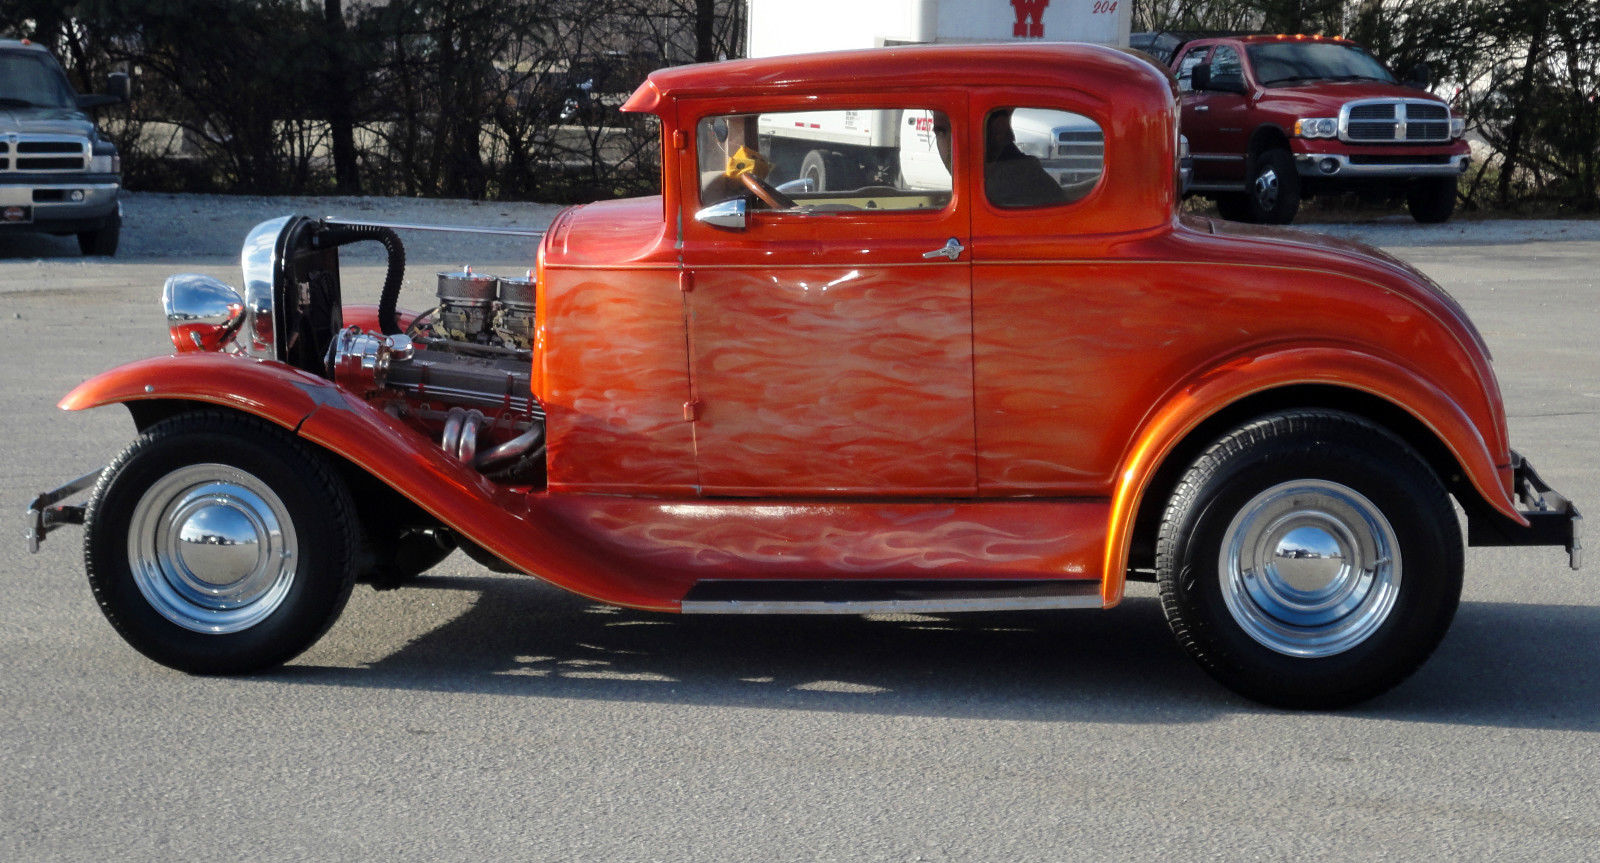 1930 ford model a 5 window coupe 305 dual carbs headers for 1930 model a 5 window coupe for sale